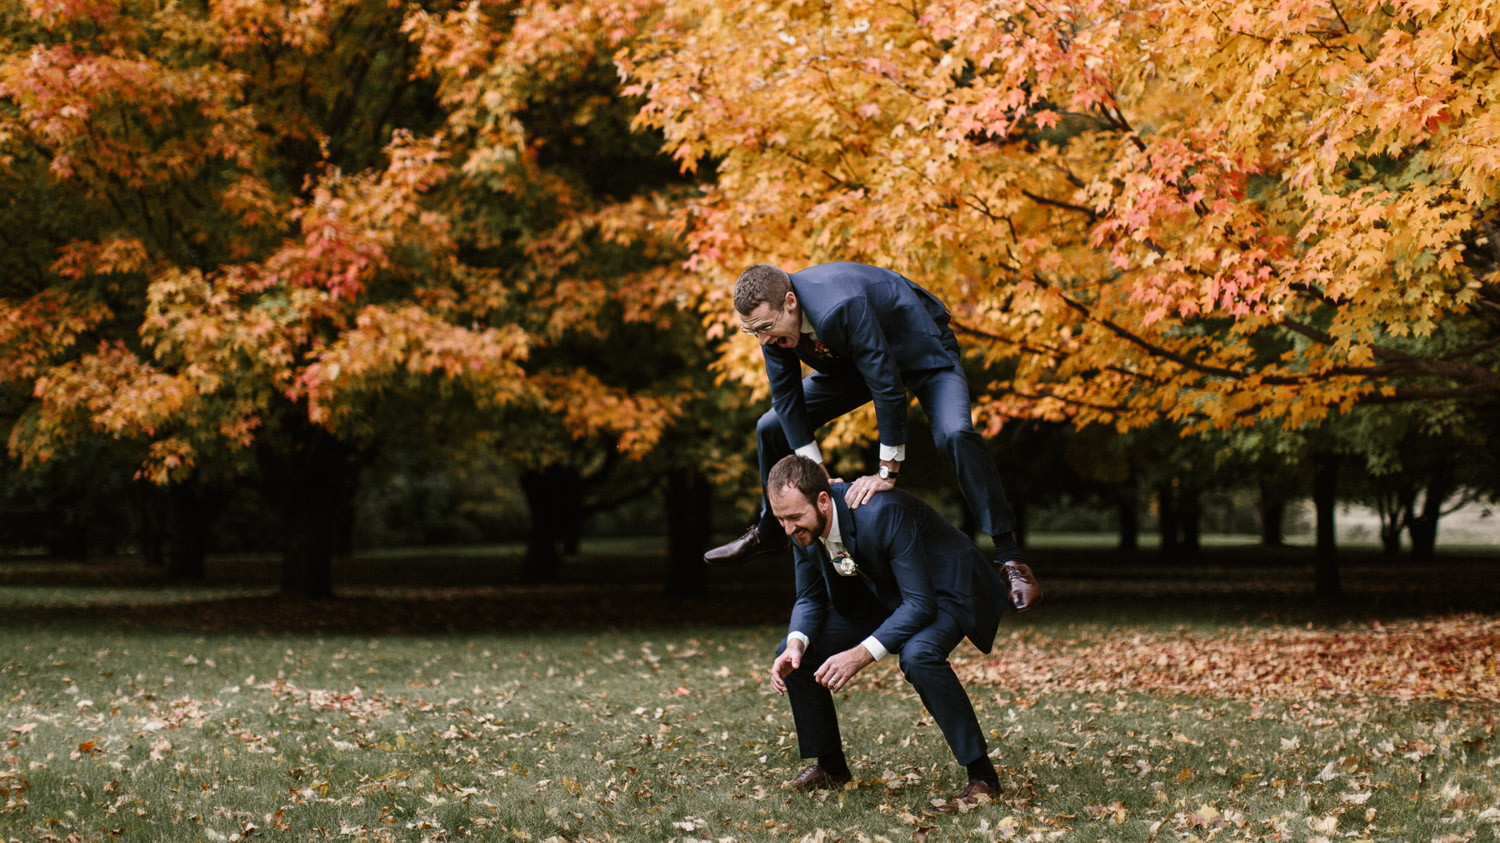 SiouxFalls_Fall_Wedding_Photographer_Oct_16.jpg